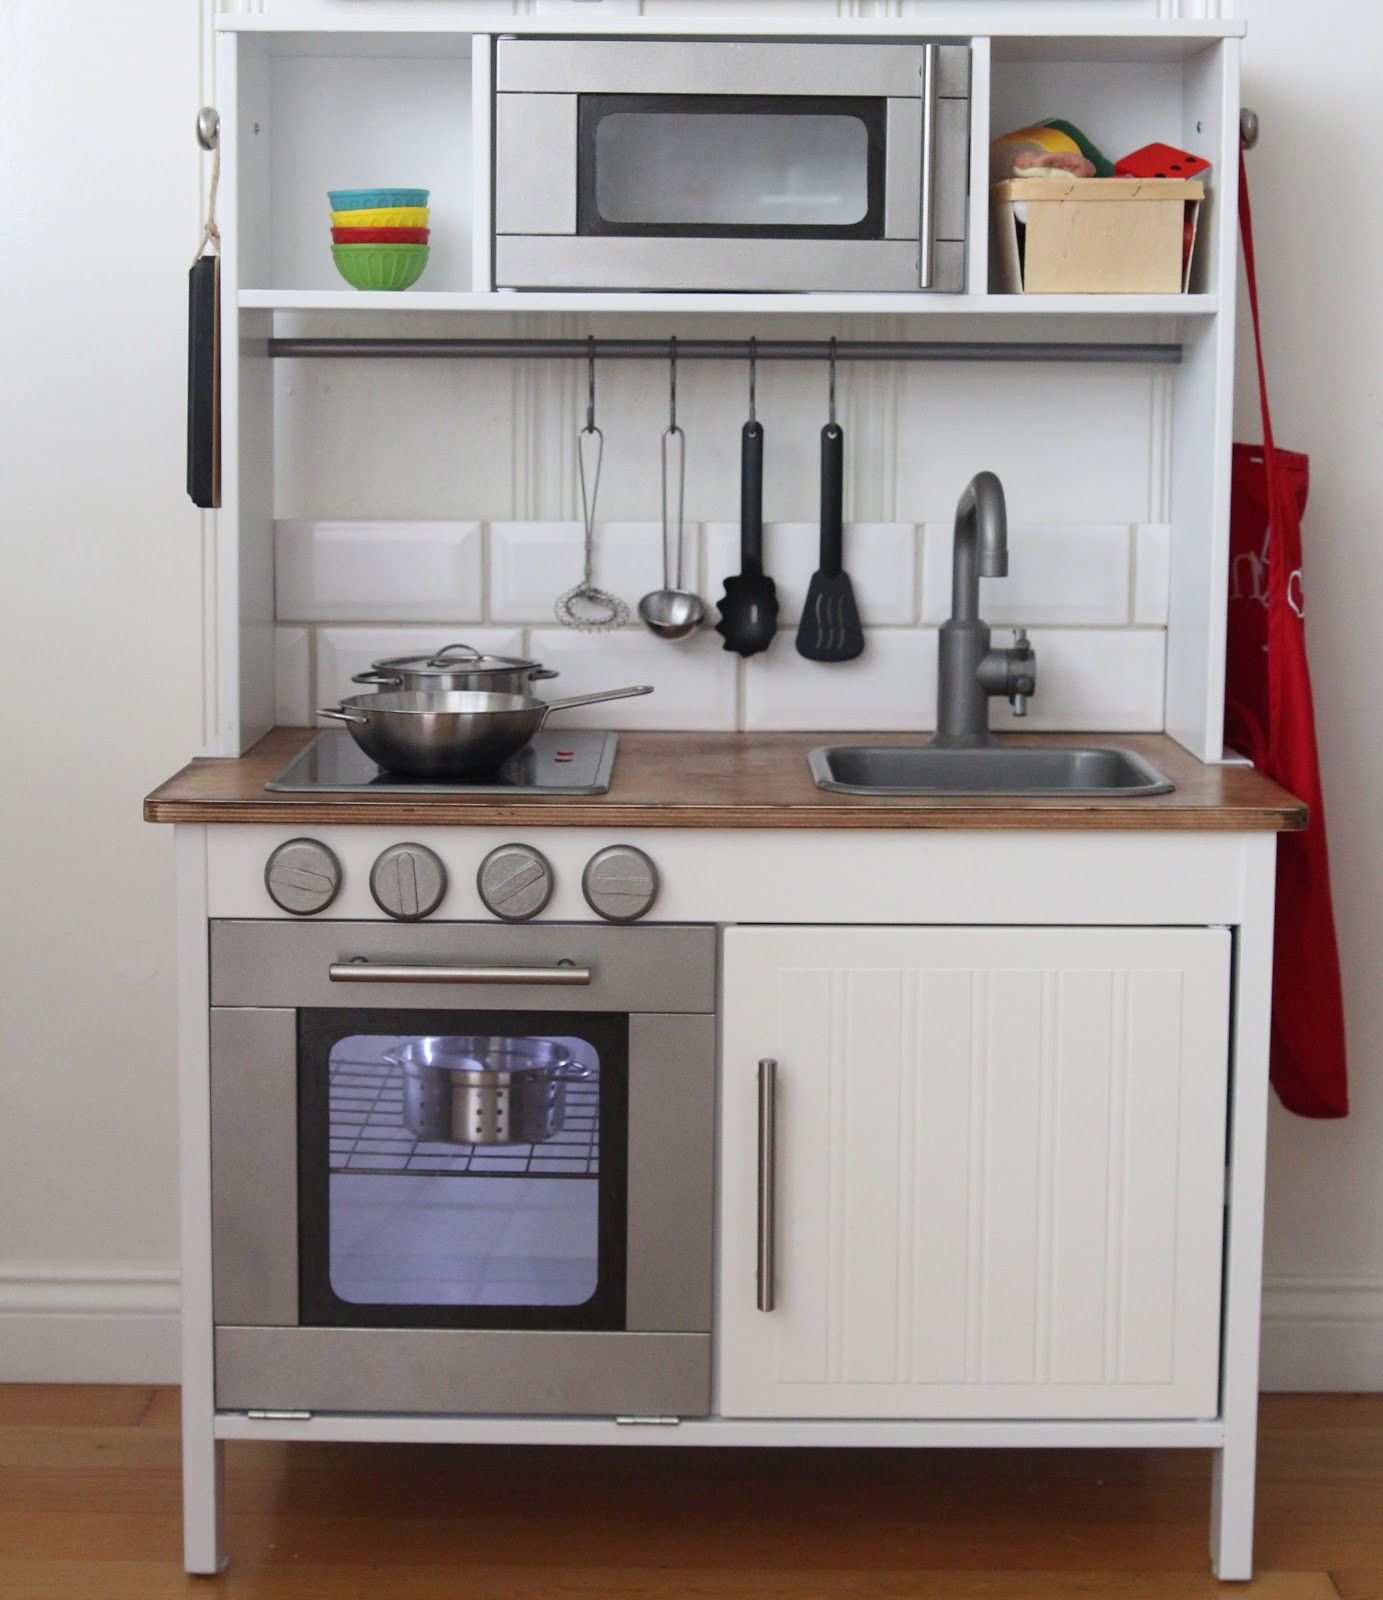 Best ideas about DIY Ikea Kitchen . Save or Pin sandpaper and silly putty it s all in the details Now.